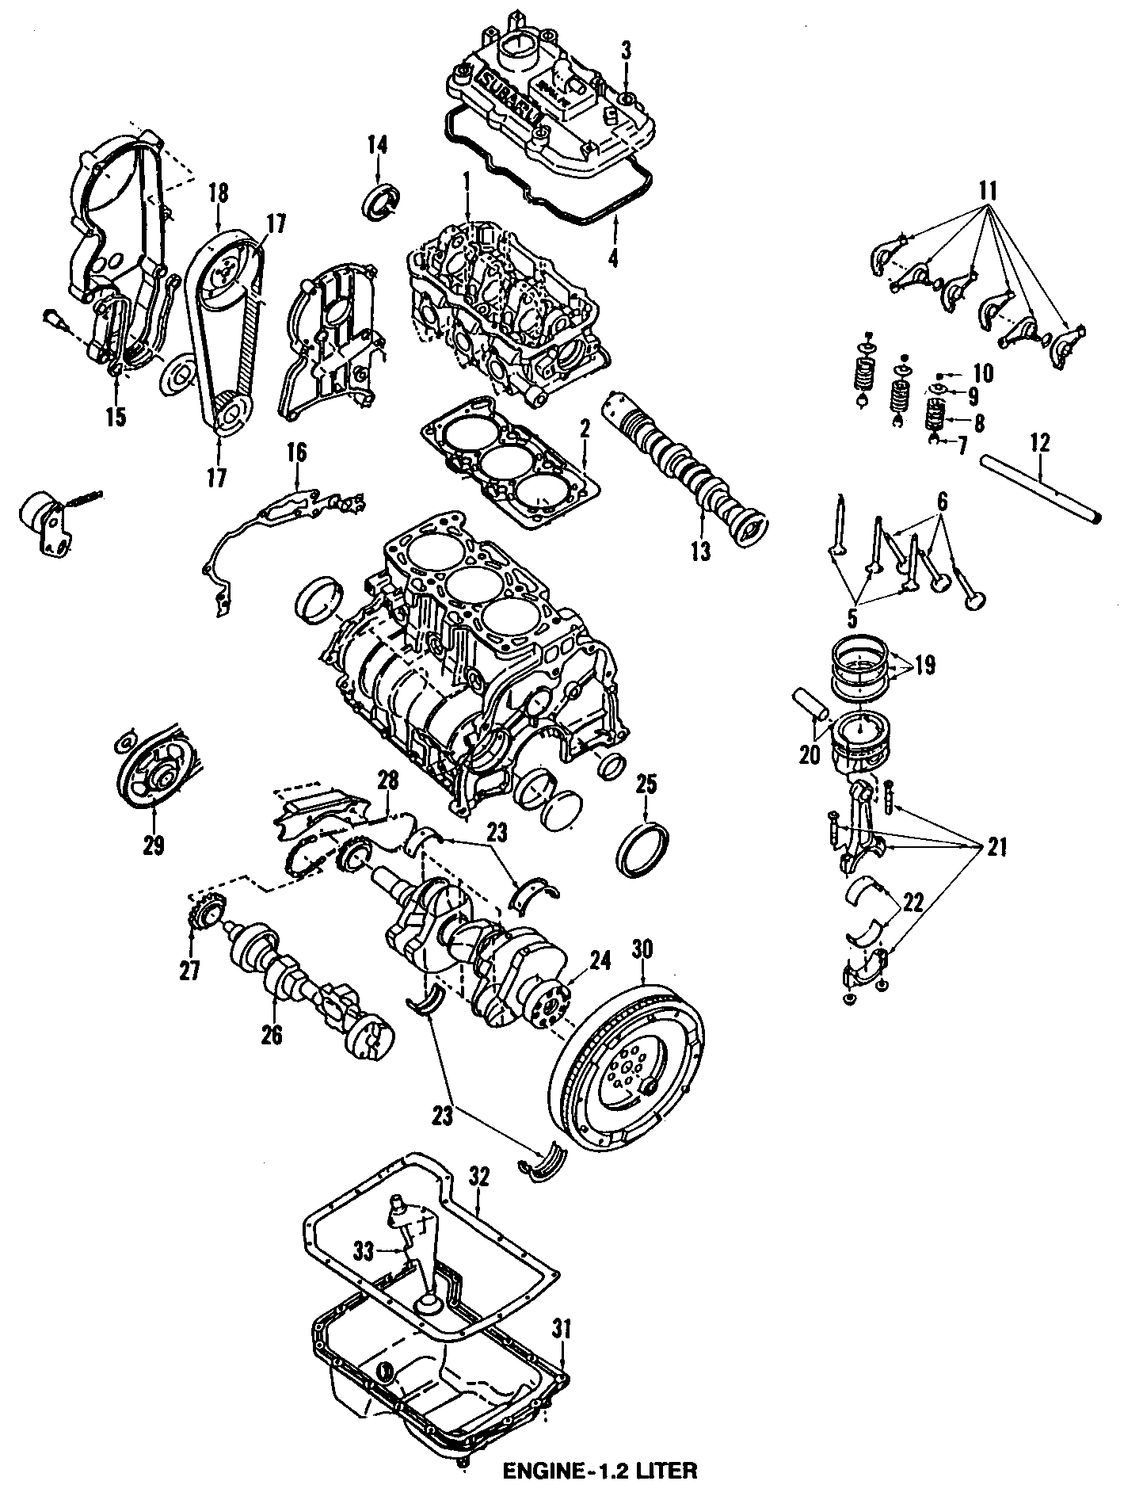 Justy Engine Diagram Free Wiring For You Subaru Alternator Library Rh Networkstress Net Wind 1988